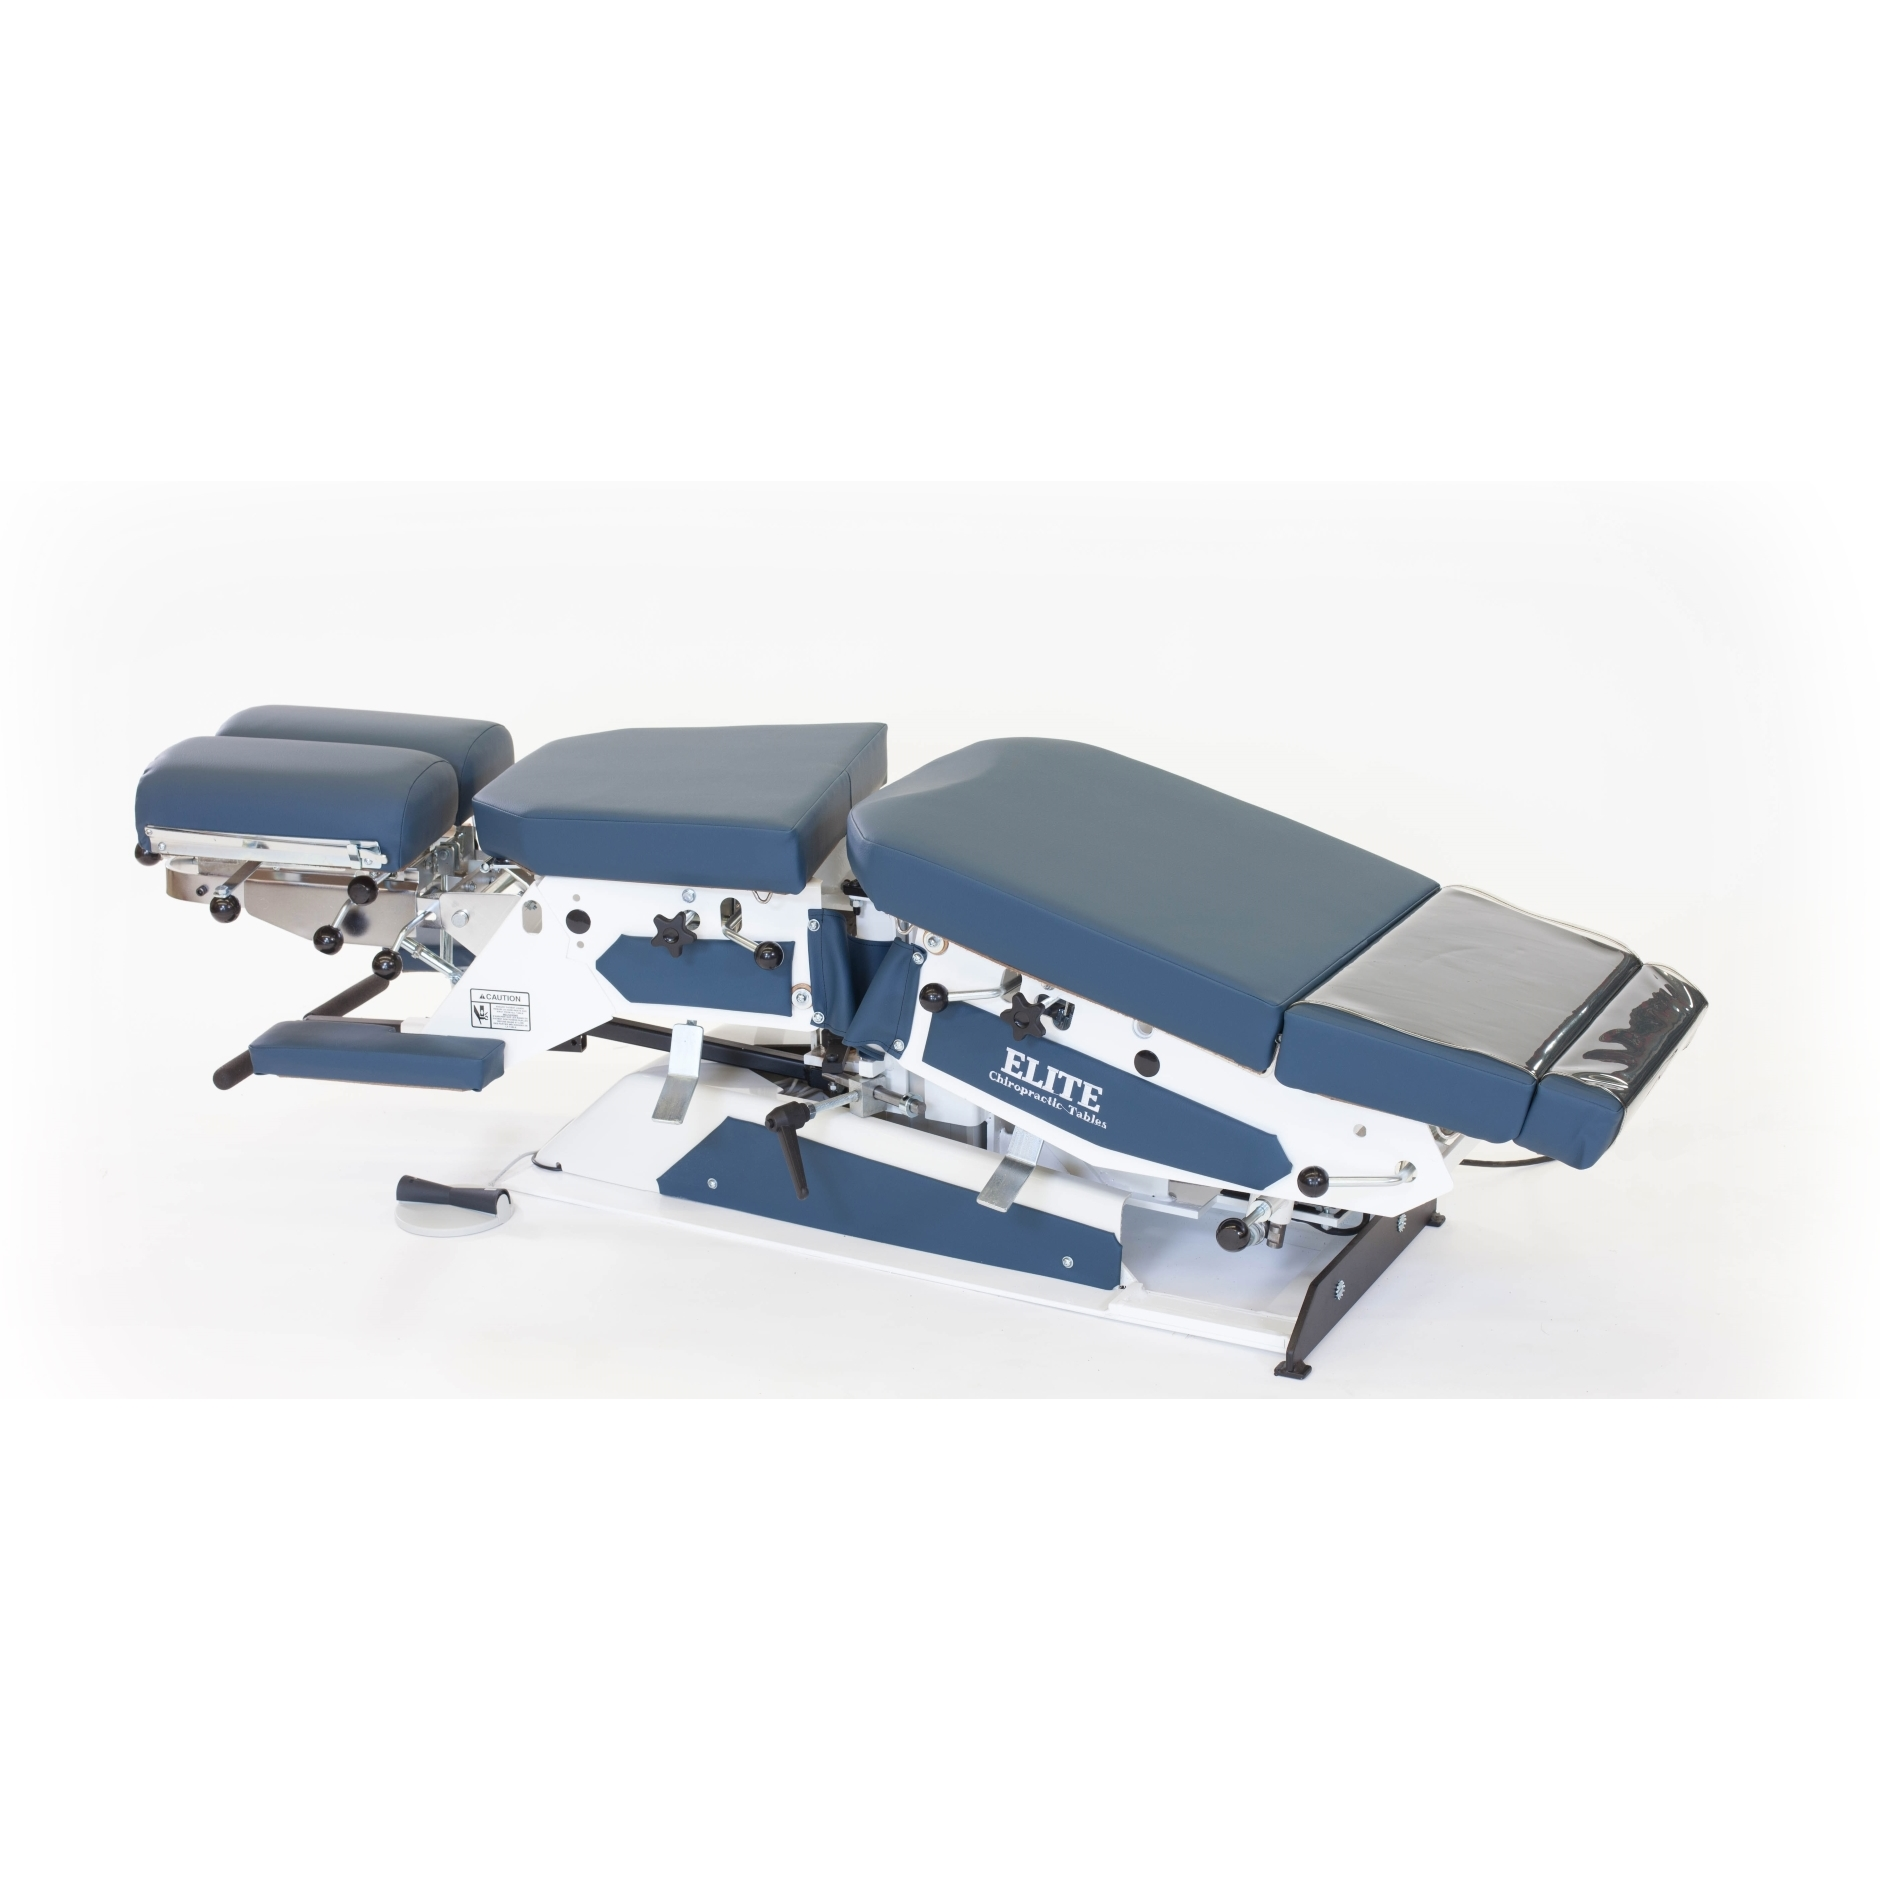 tips on finding affordable chiropractic tables